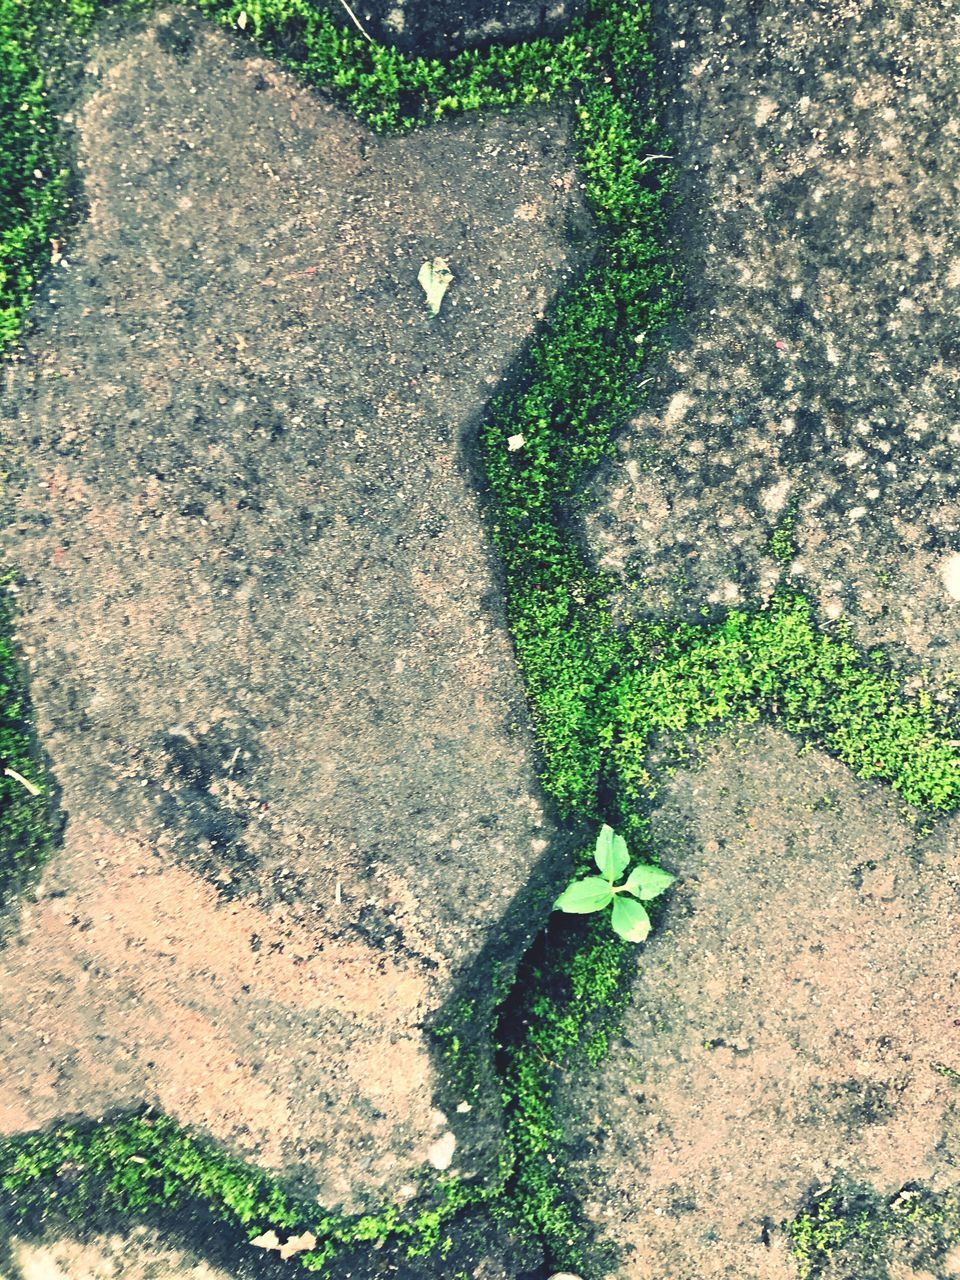 growth, high angle view, green color, plant, green, leaf, no people, day, nature, outdoors, grass, close-up, fragility, freshness